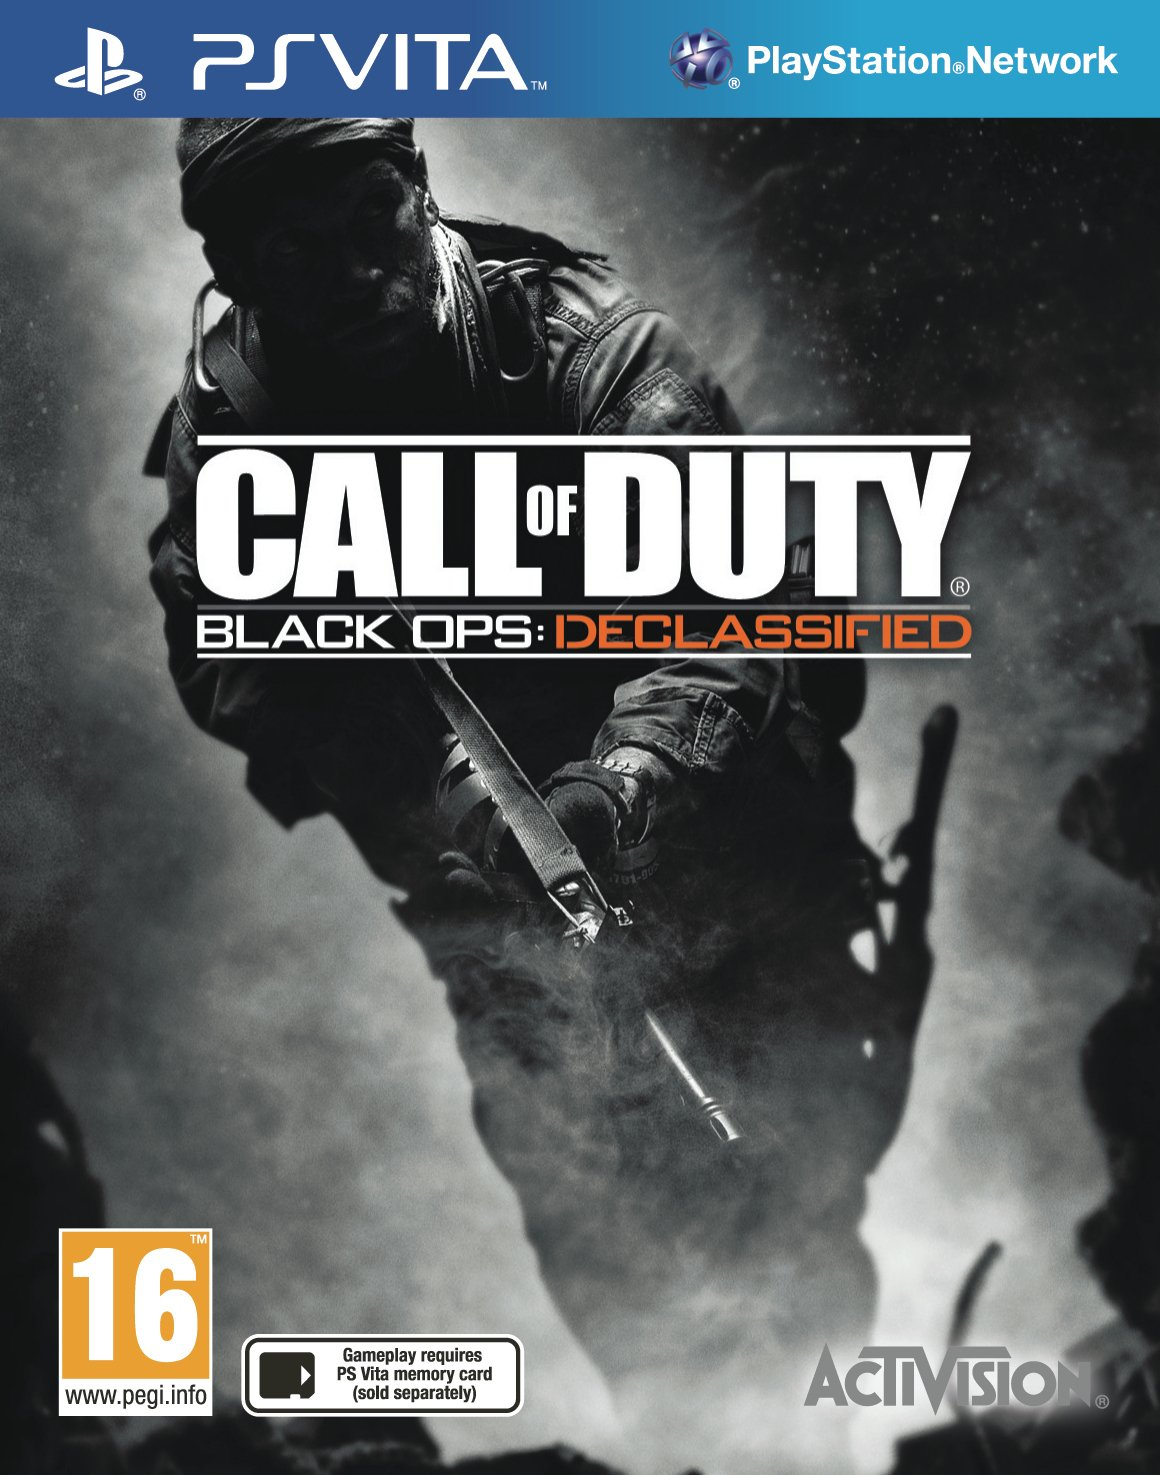 Call of Duty - Black Ops - PS Vita Game